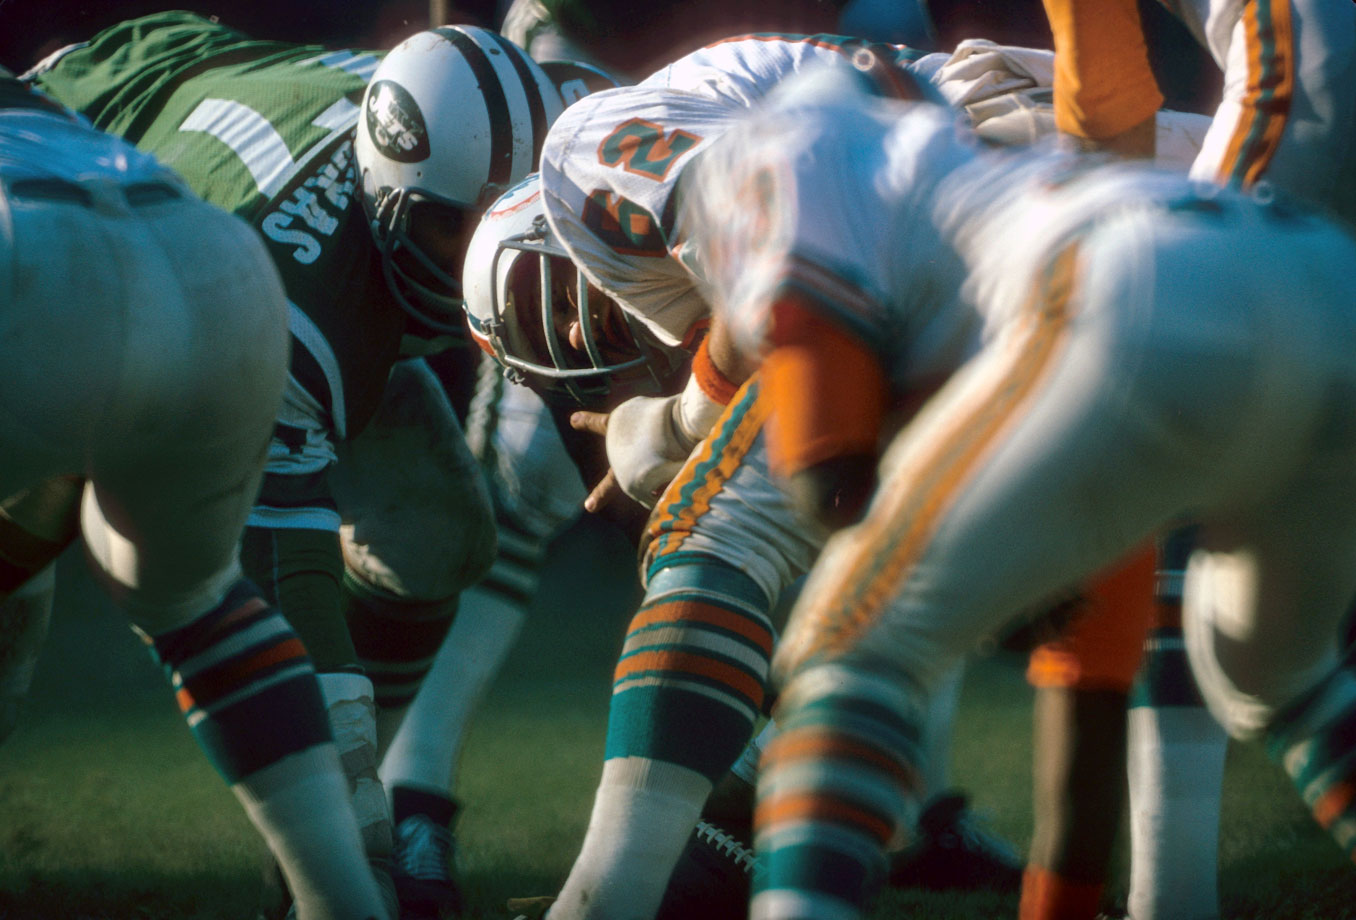 The center for one of the greatest offensive lines of all time in Miami in the early 1970s, Langer played his first season at center in '72, when he played every offensive down for the NFL's only undefeated team. He was named to six Pro Bowls and four first-team All-Pro squads and made the Hall of Fame's All-1970s team.